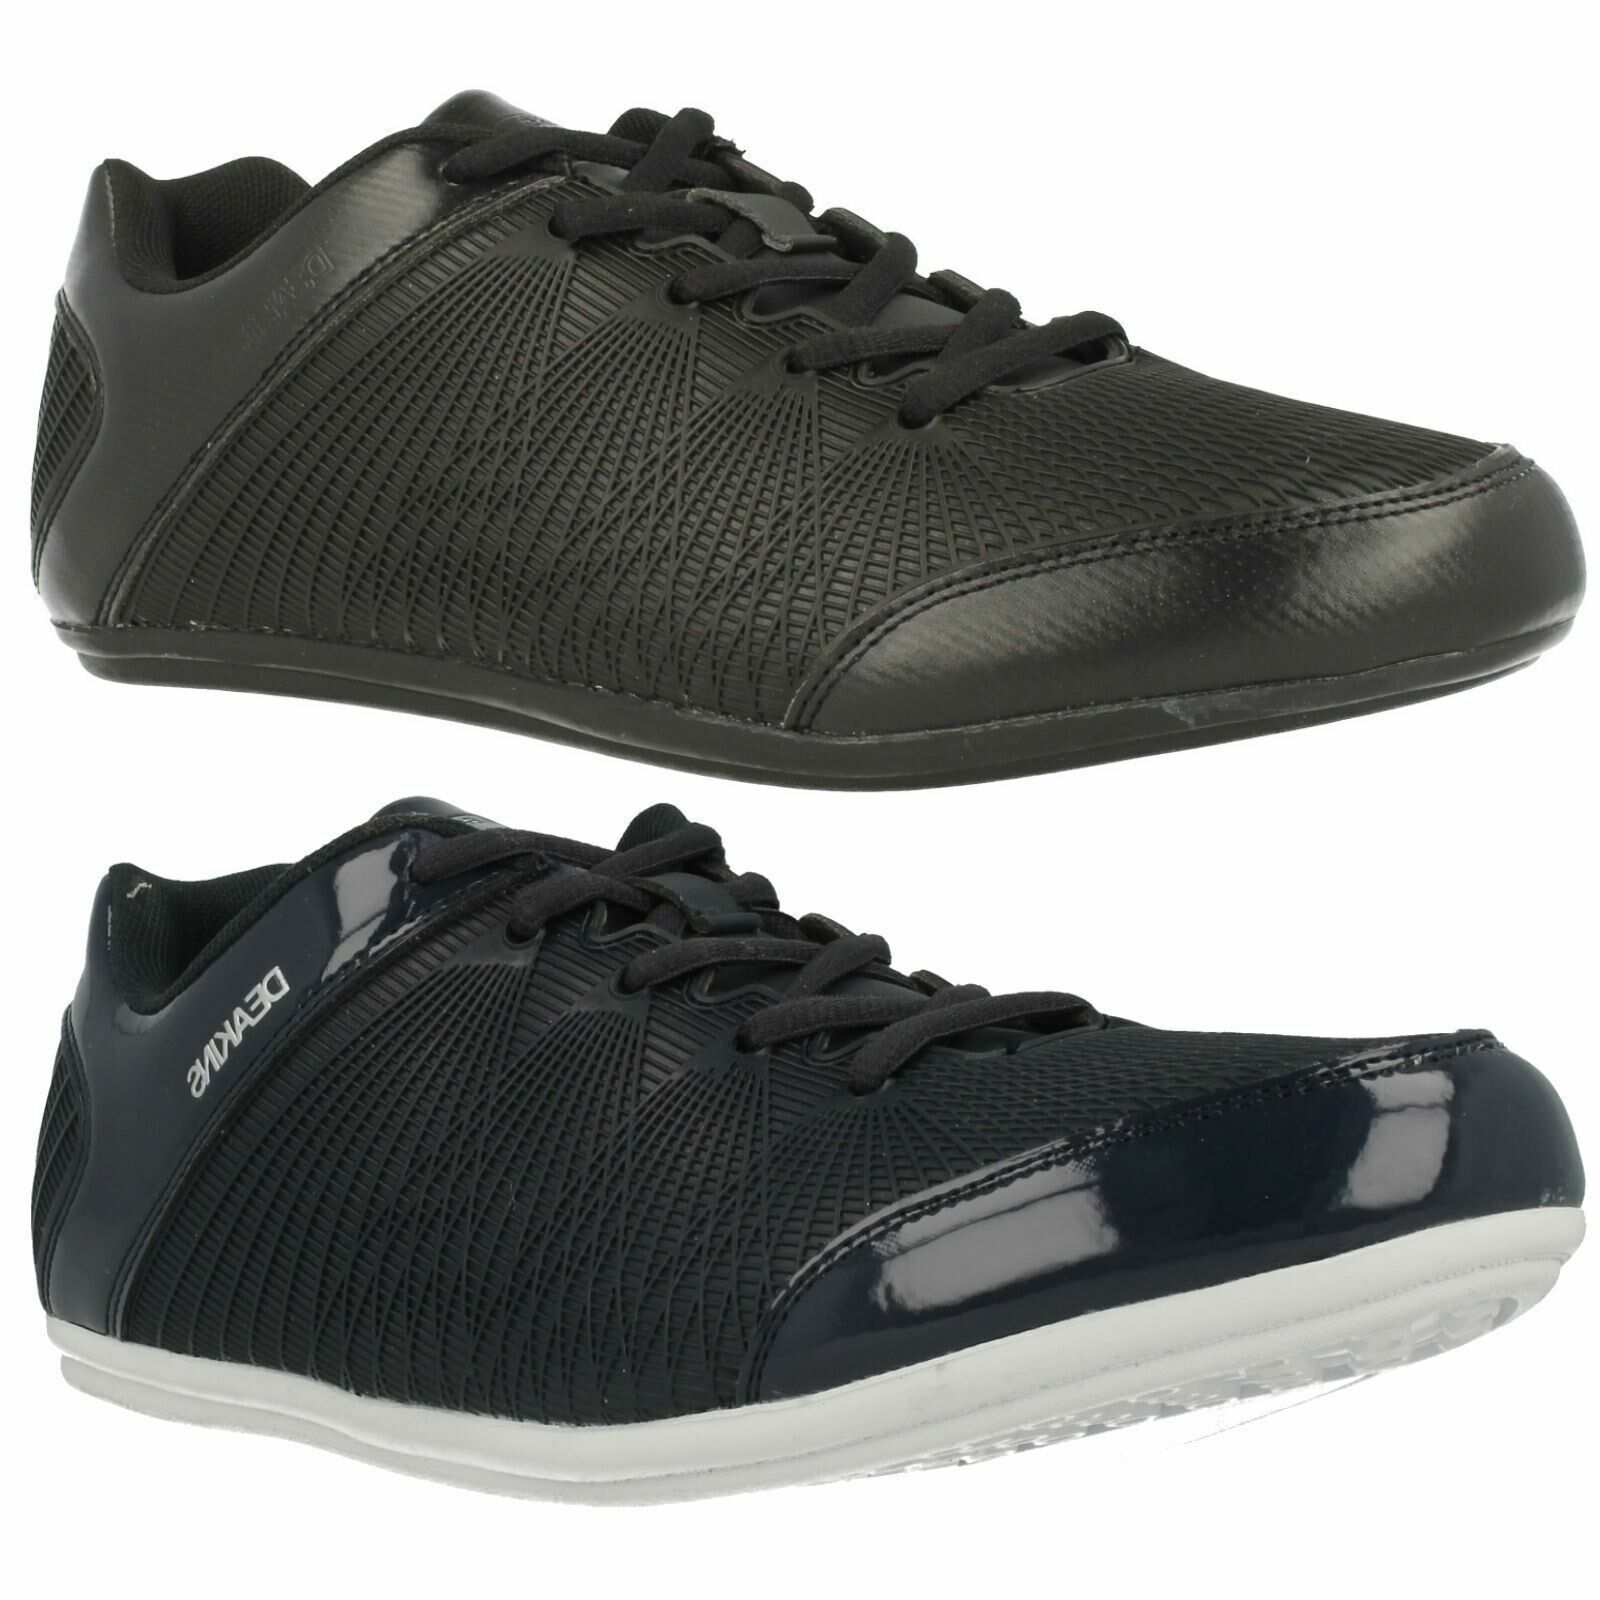 DEAKINS MCLAREN MENS BLACK CASUAL LACE UP EVRYDAY FLAT TRAINERS SHOES SIZE